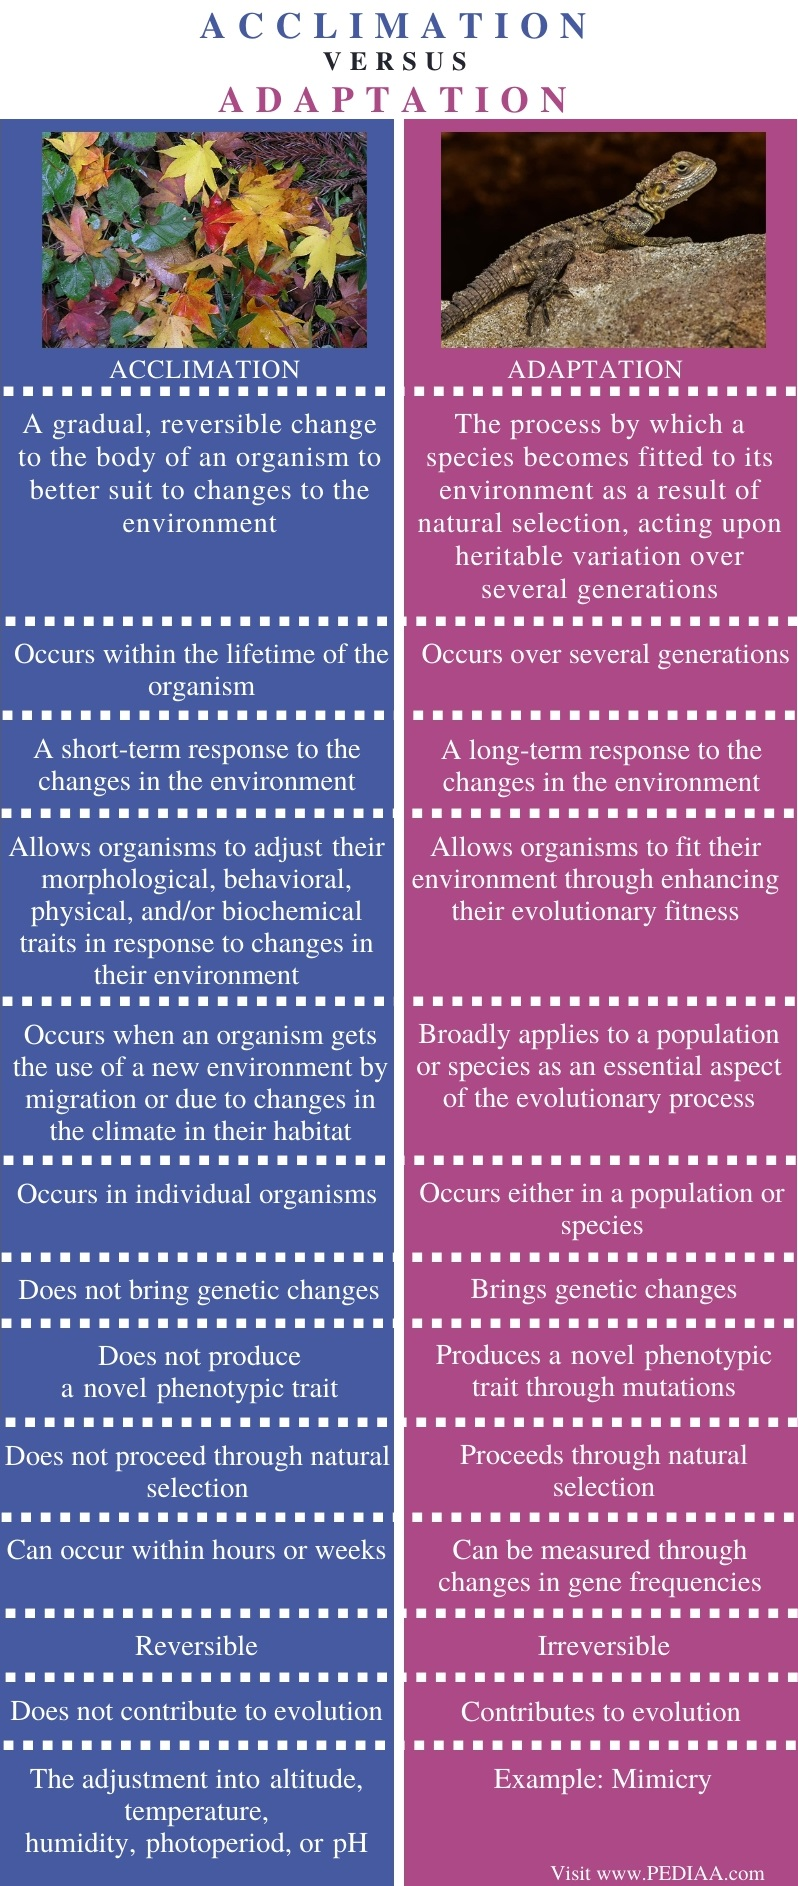 Difference Between Acclimation and Adaptation - Comparison Summary